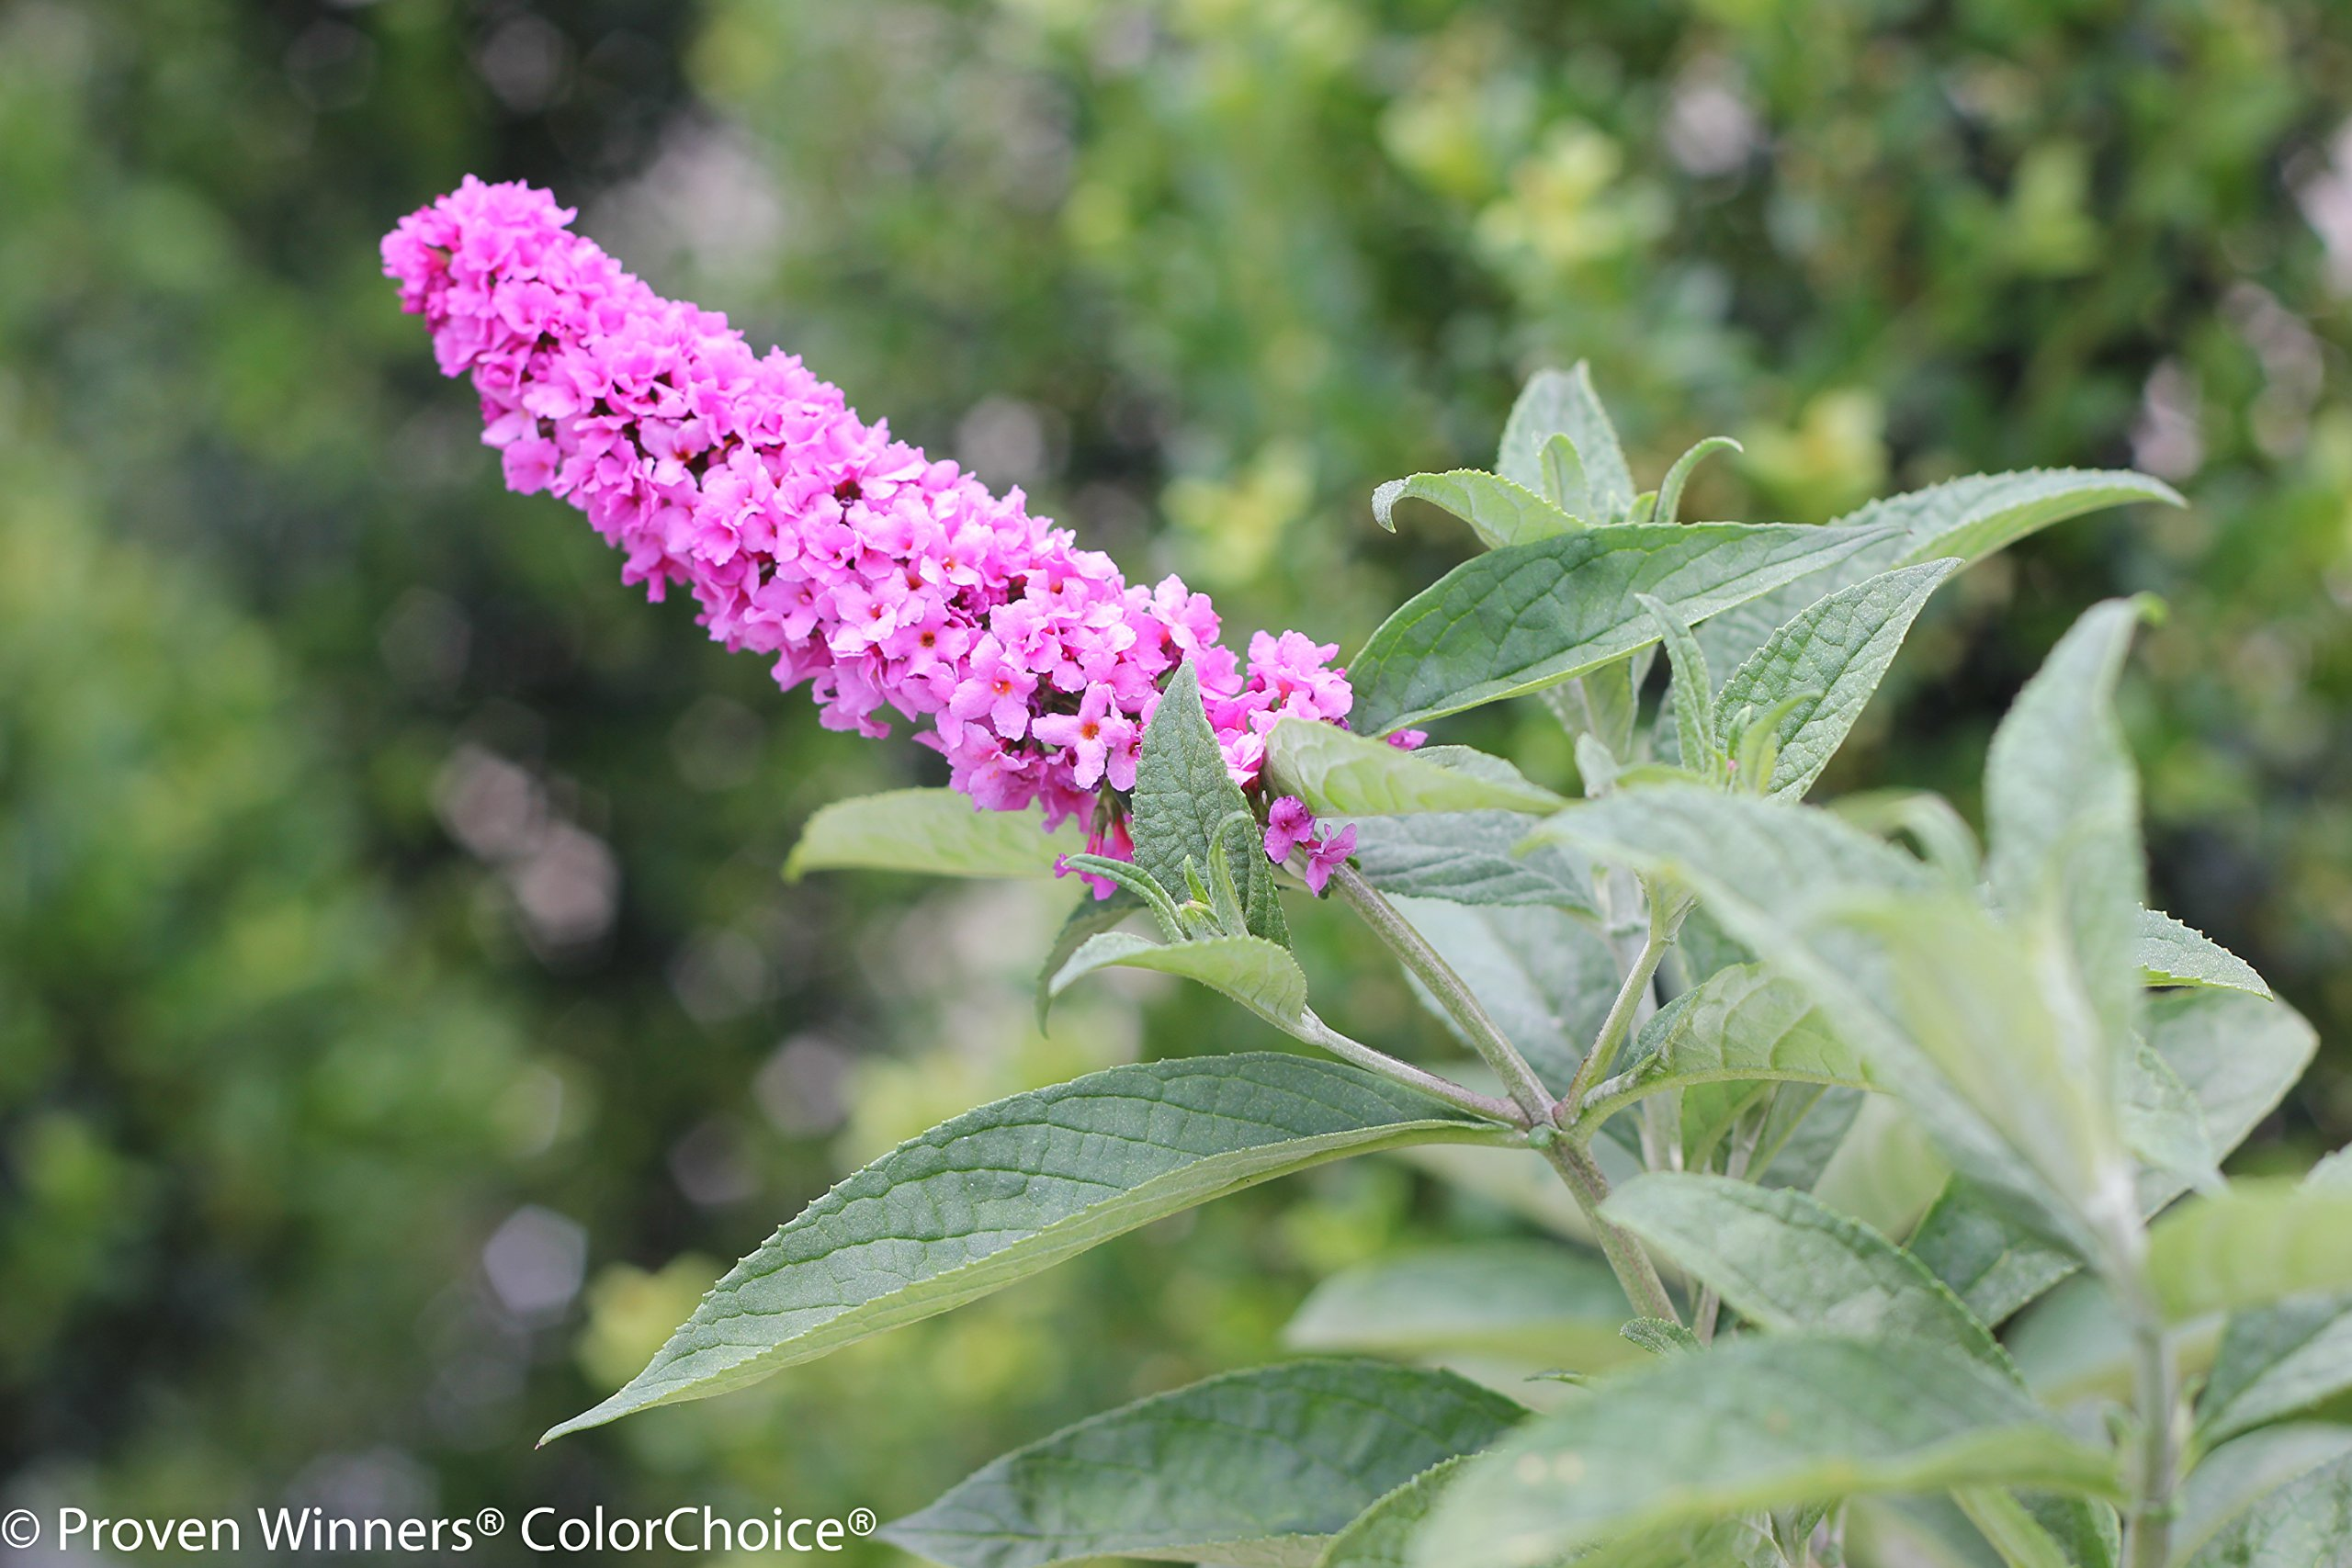 1 Gal. Lo & Behold 'Pink Micro Chip' Butterfly Bush (Buddleia) Live Shrub, Pink Flowers by Proven Winners (Image #6)